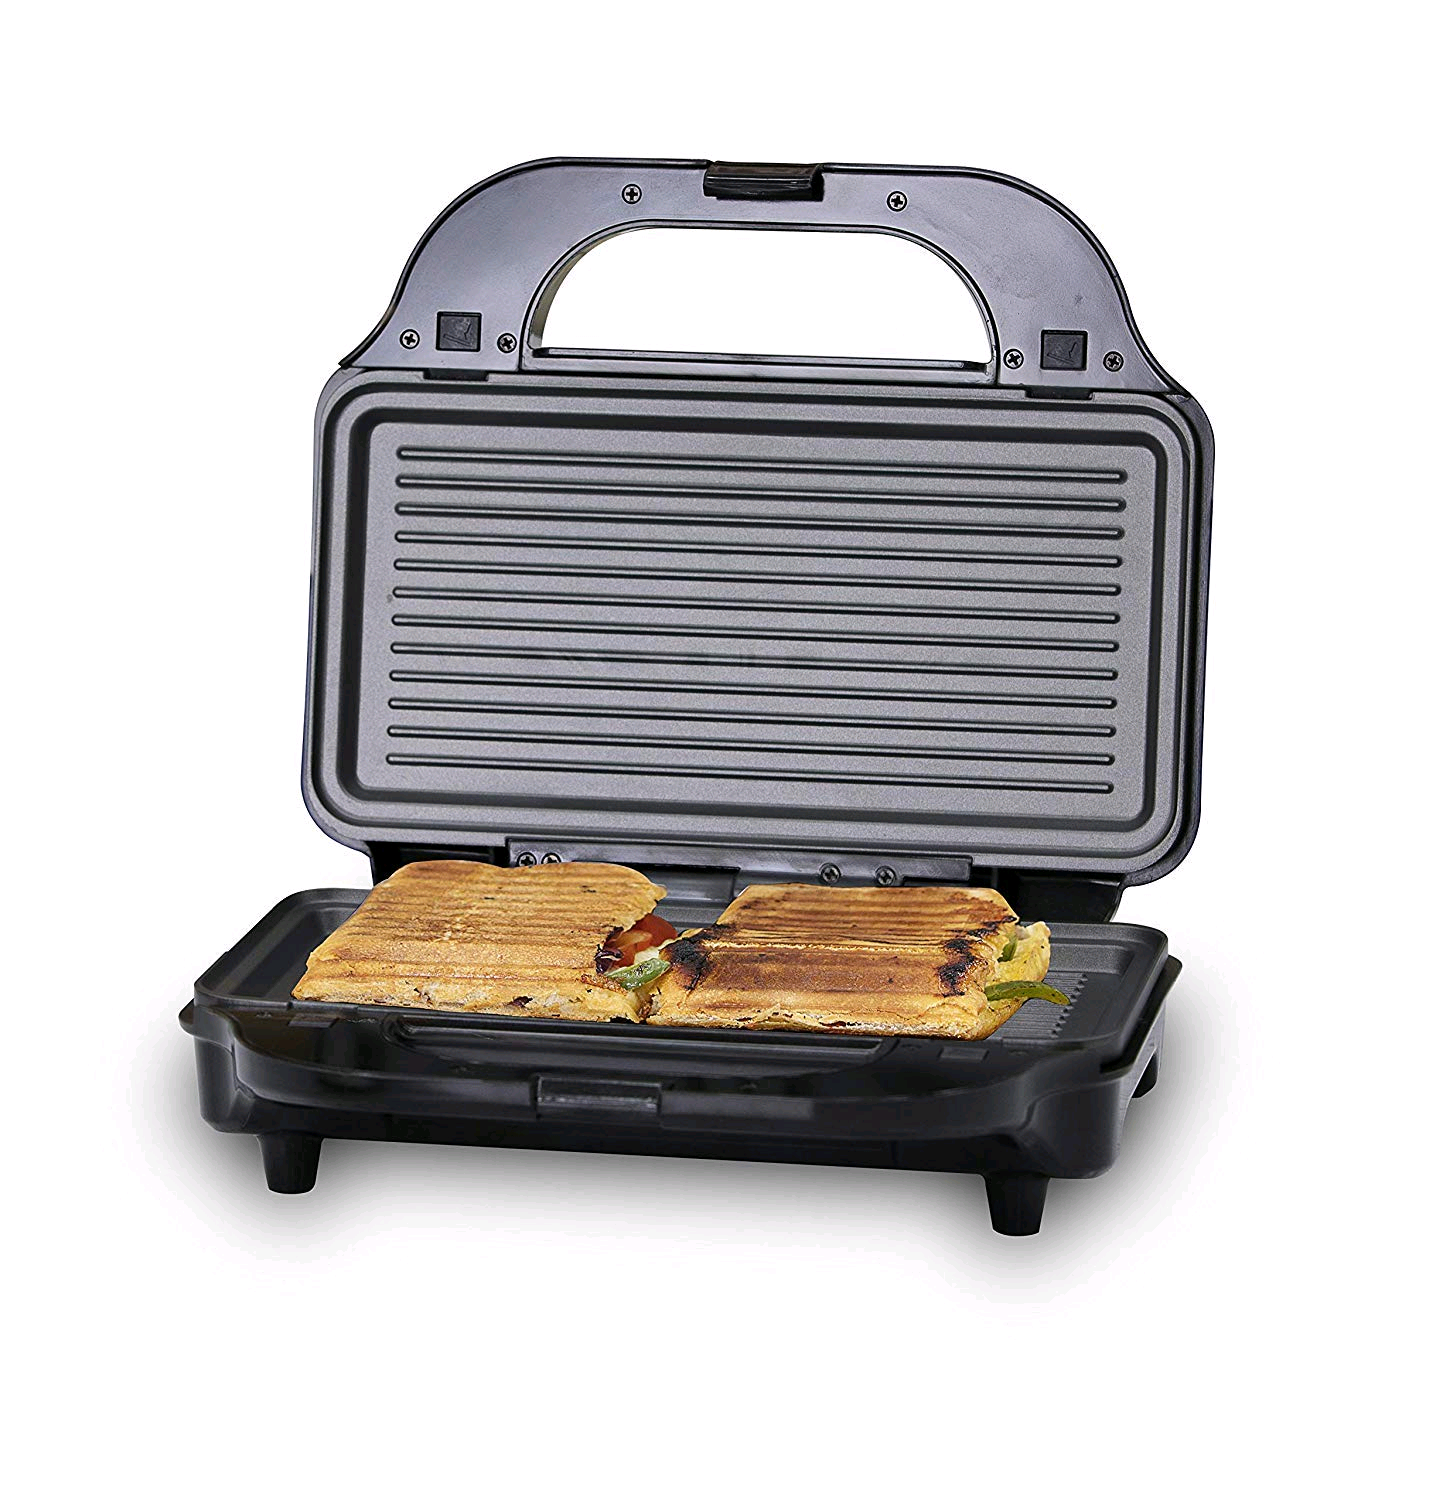 Tower T27020 3-in-1 Grill, Sandwich and Waffle Maker with Non-Stick, Easy Clean Removable Plates, Automatic Temperature Control, Aluminium, 900 W, Silver/Black